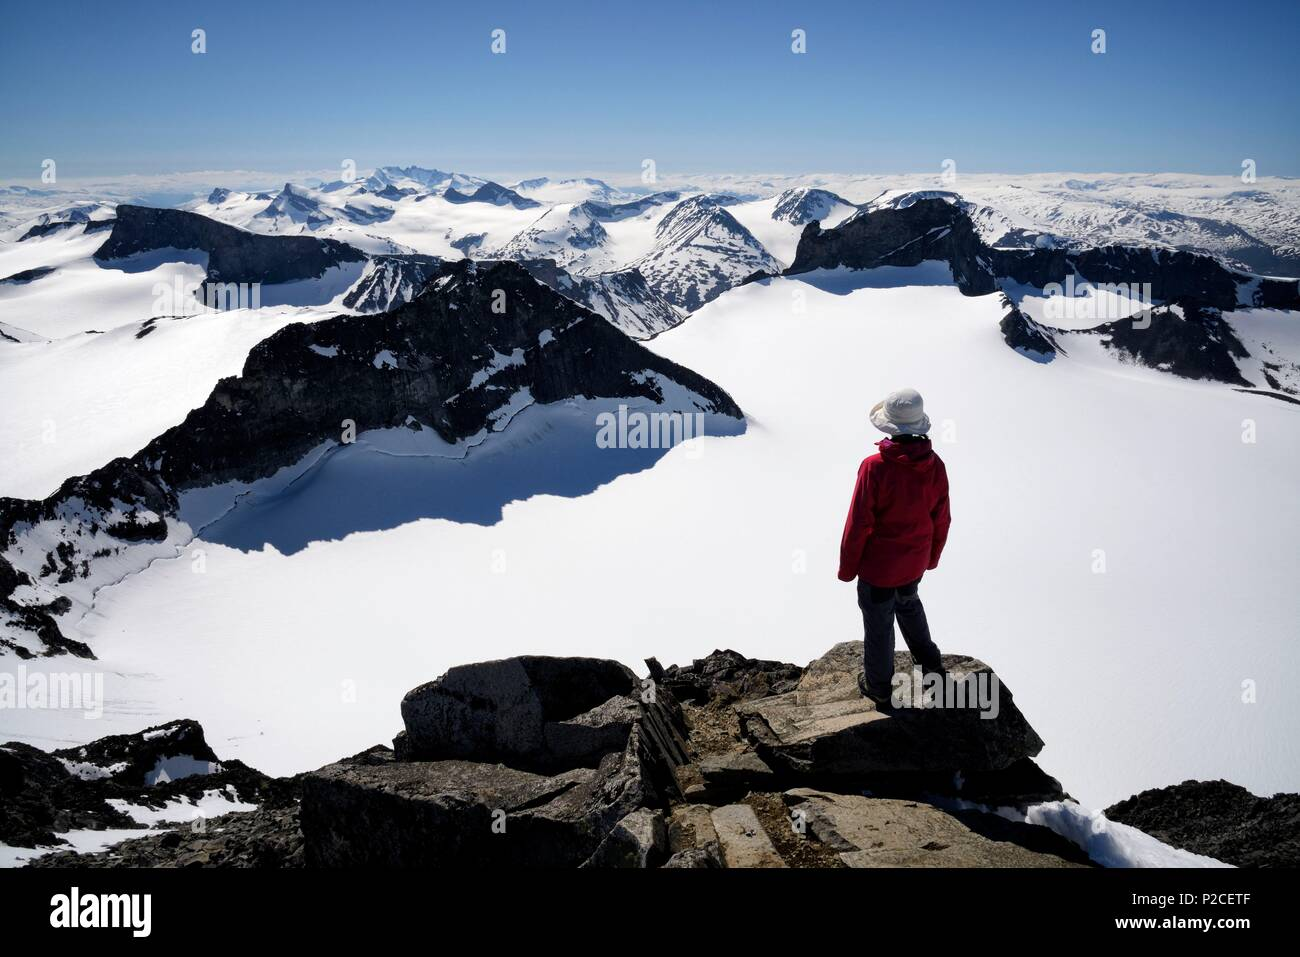 Norway, Oppland, Vaga, Jotunheimen National Park, trekker at the summit of Galdhopiggen, the tallest mountain in Norway and Scandinavia at 2469m - Stock Image